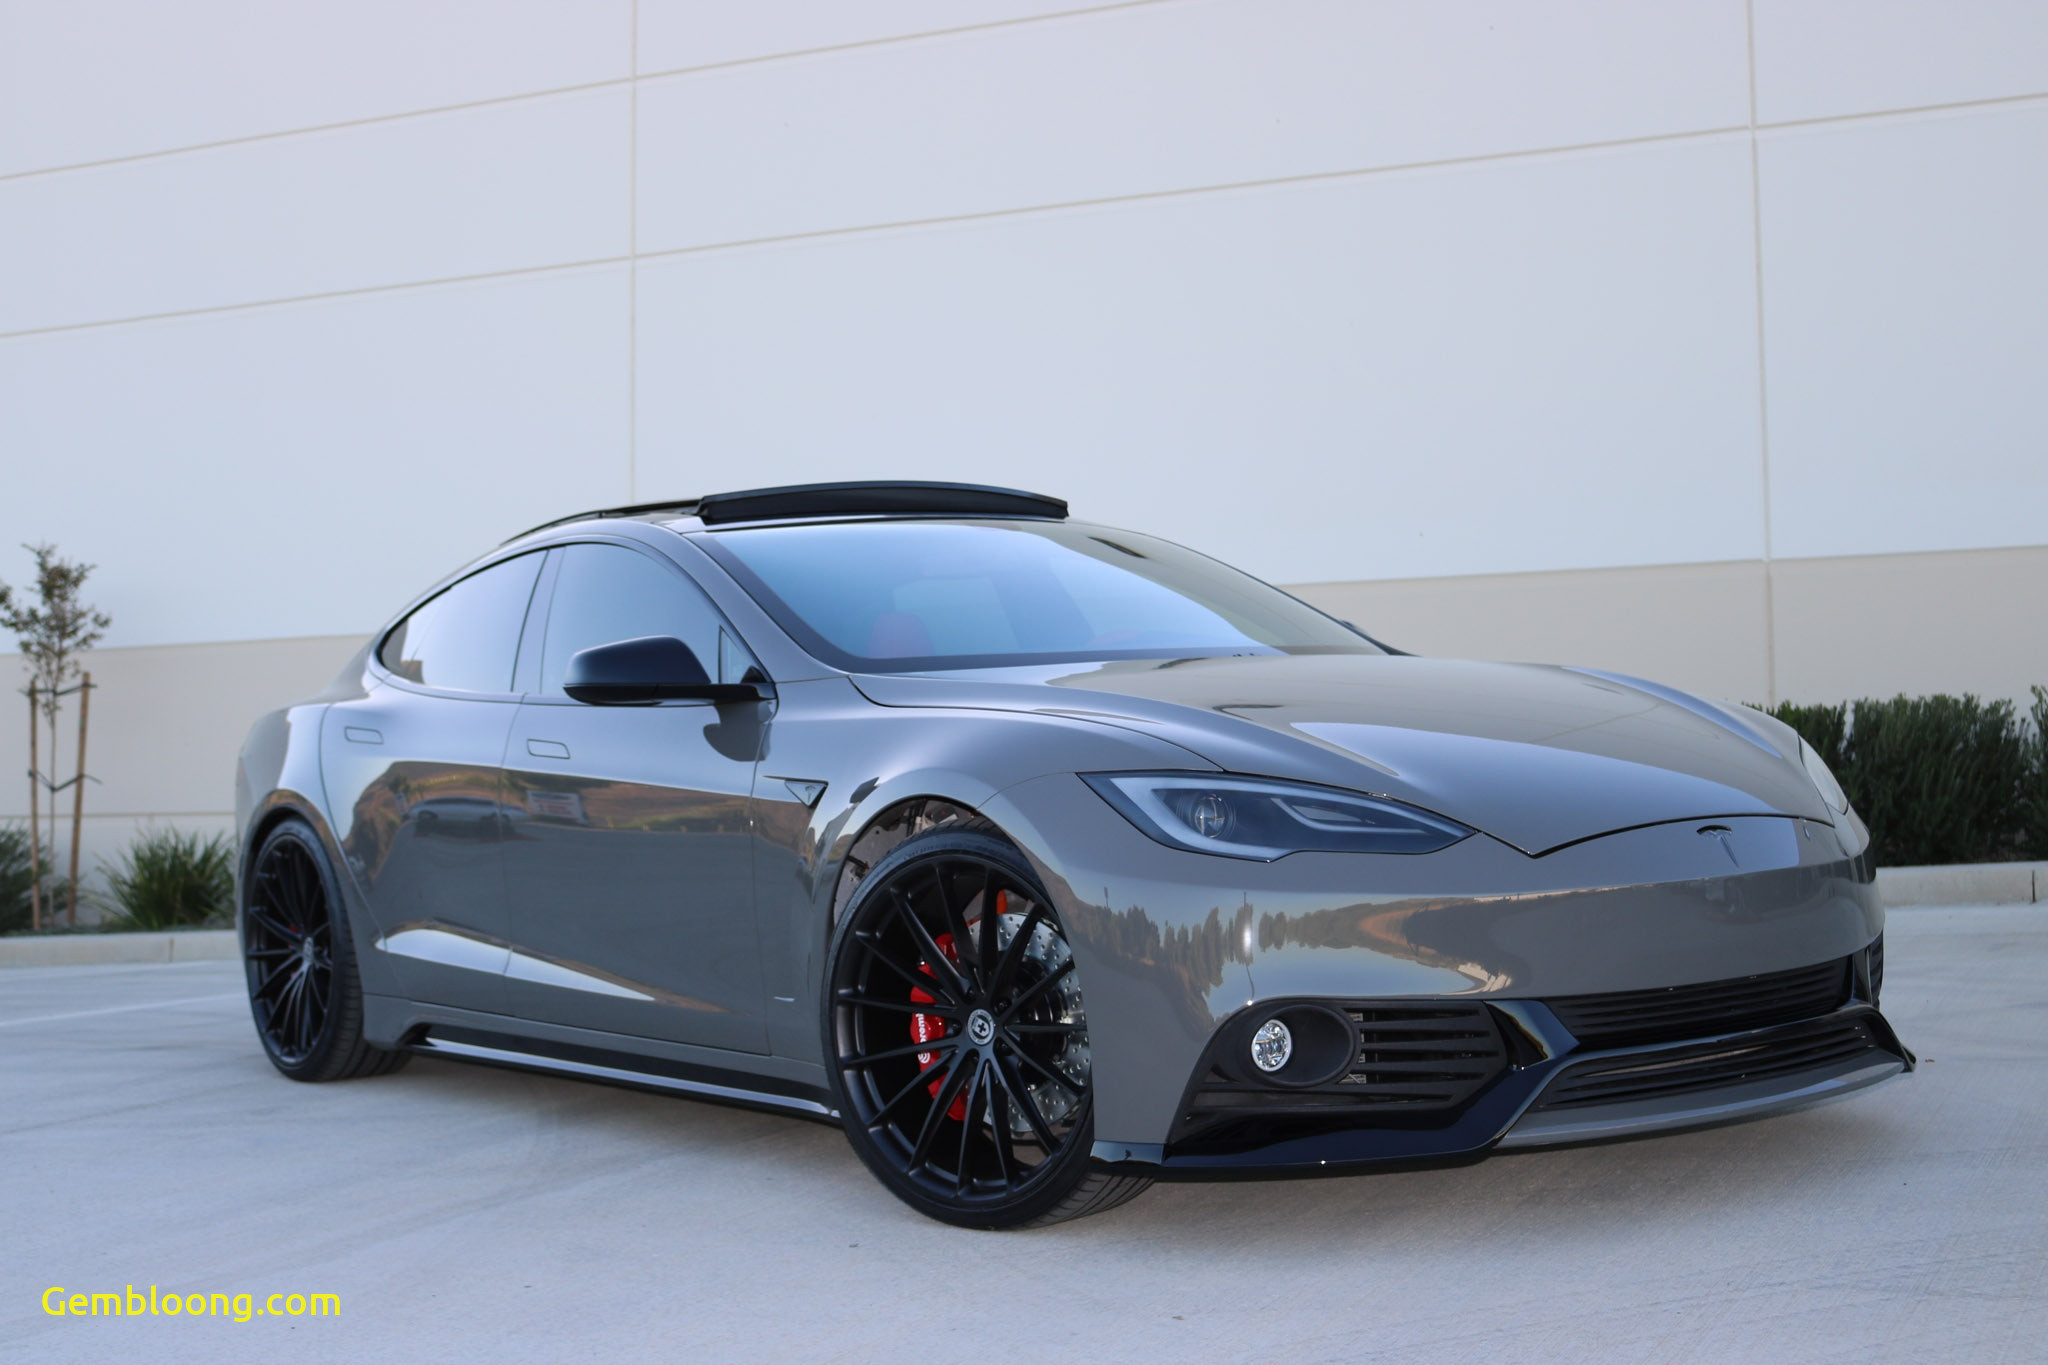 Tesla to A/m Lovely Zero to 60 Designs Gives the Tesla Model S A Radical